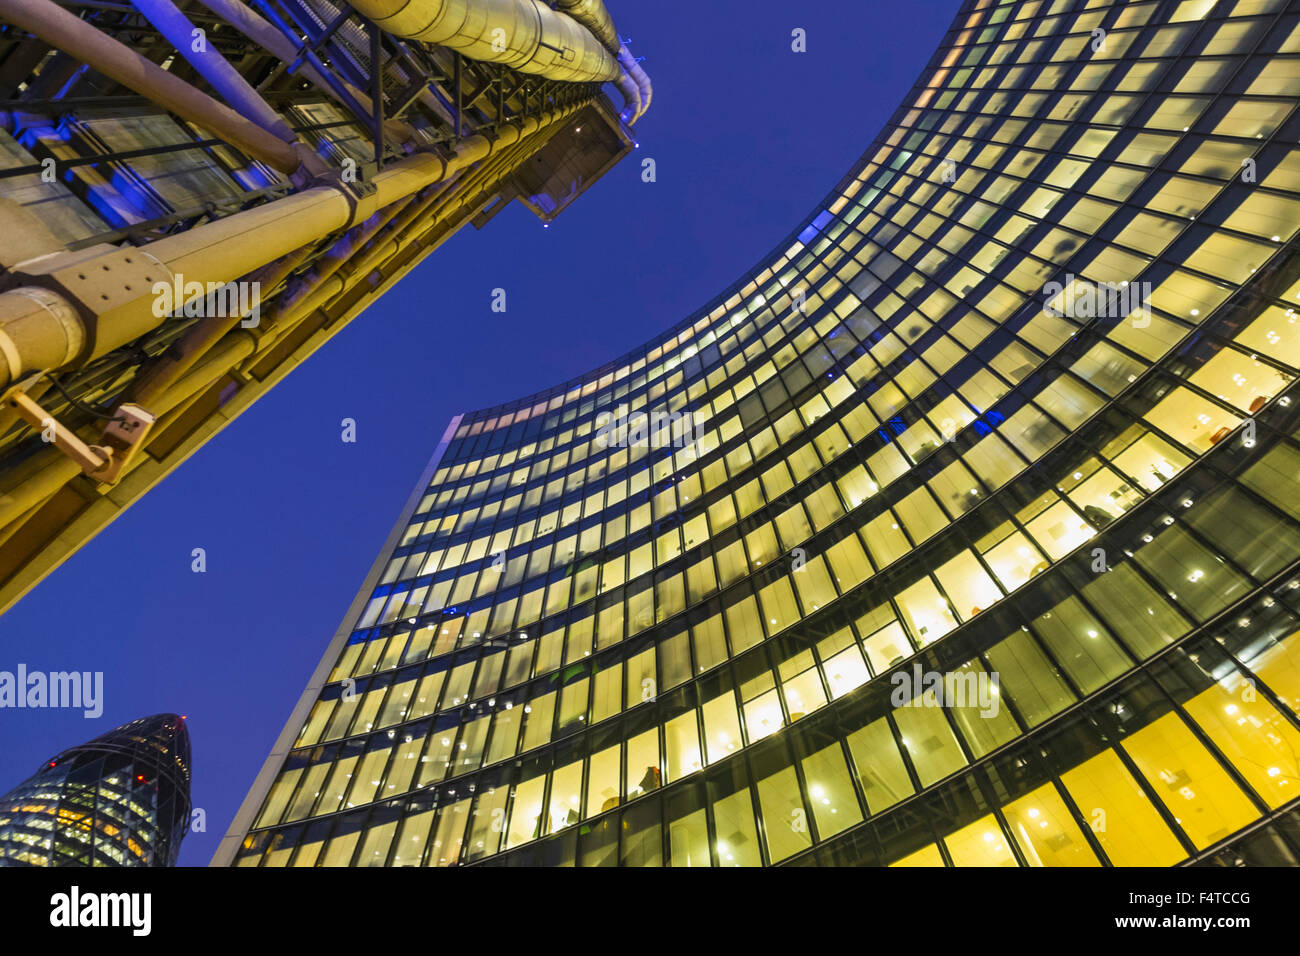 England, London, City, The Willis Building, Architect Foster+Partners - Stock Image